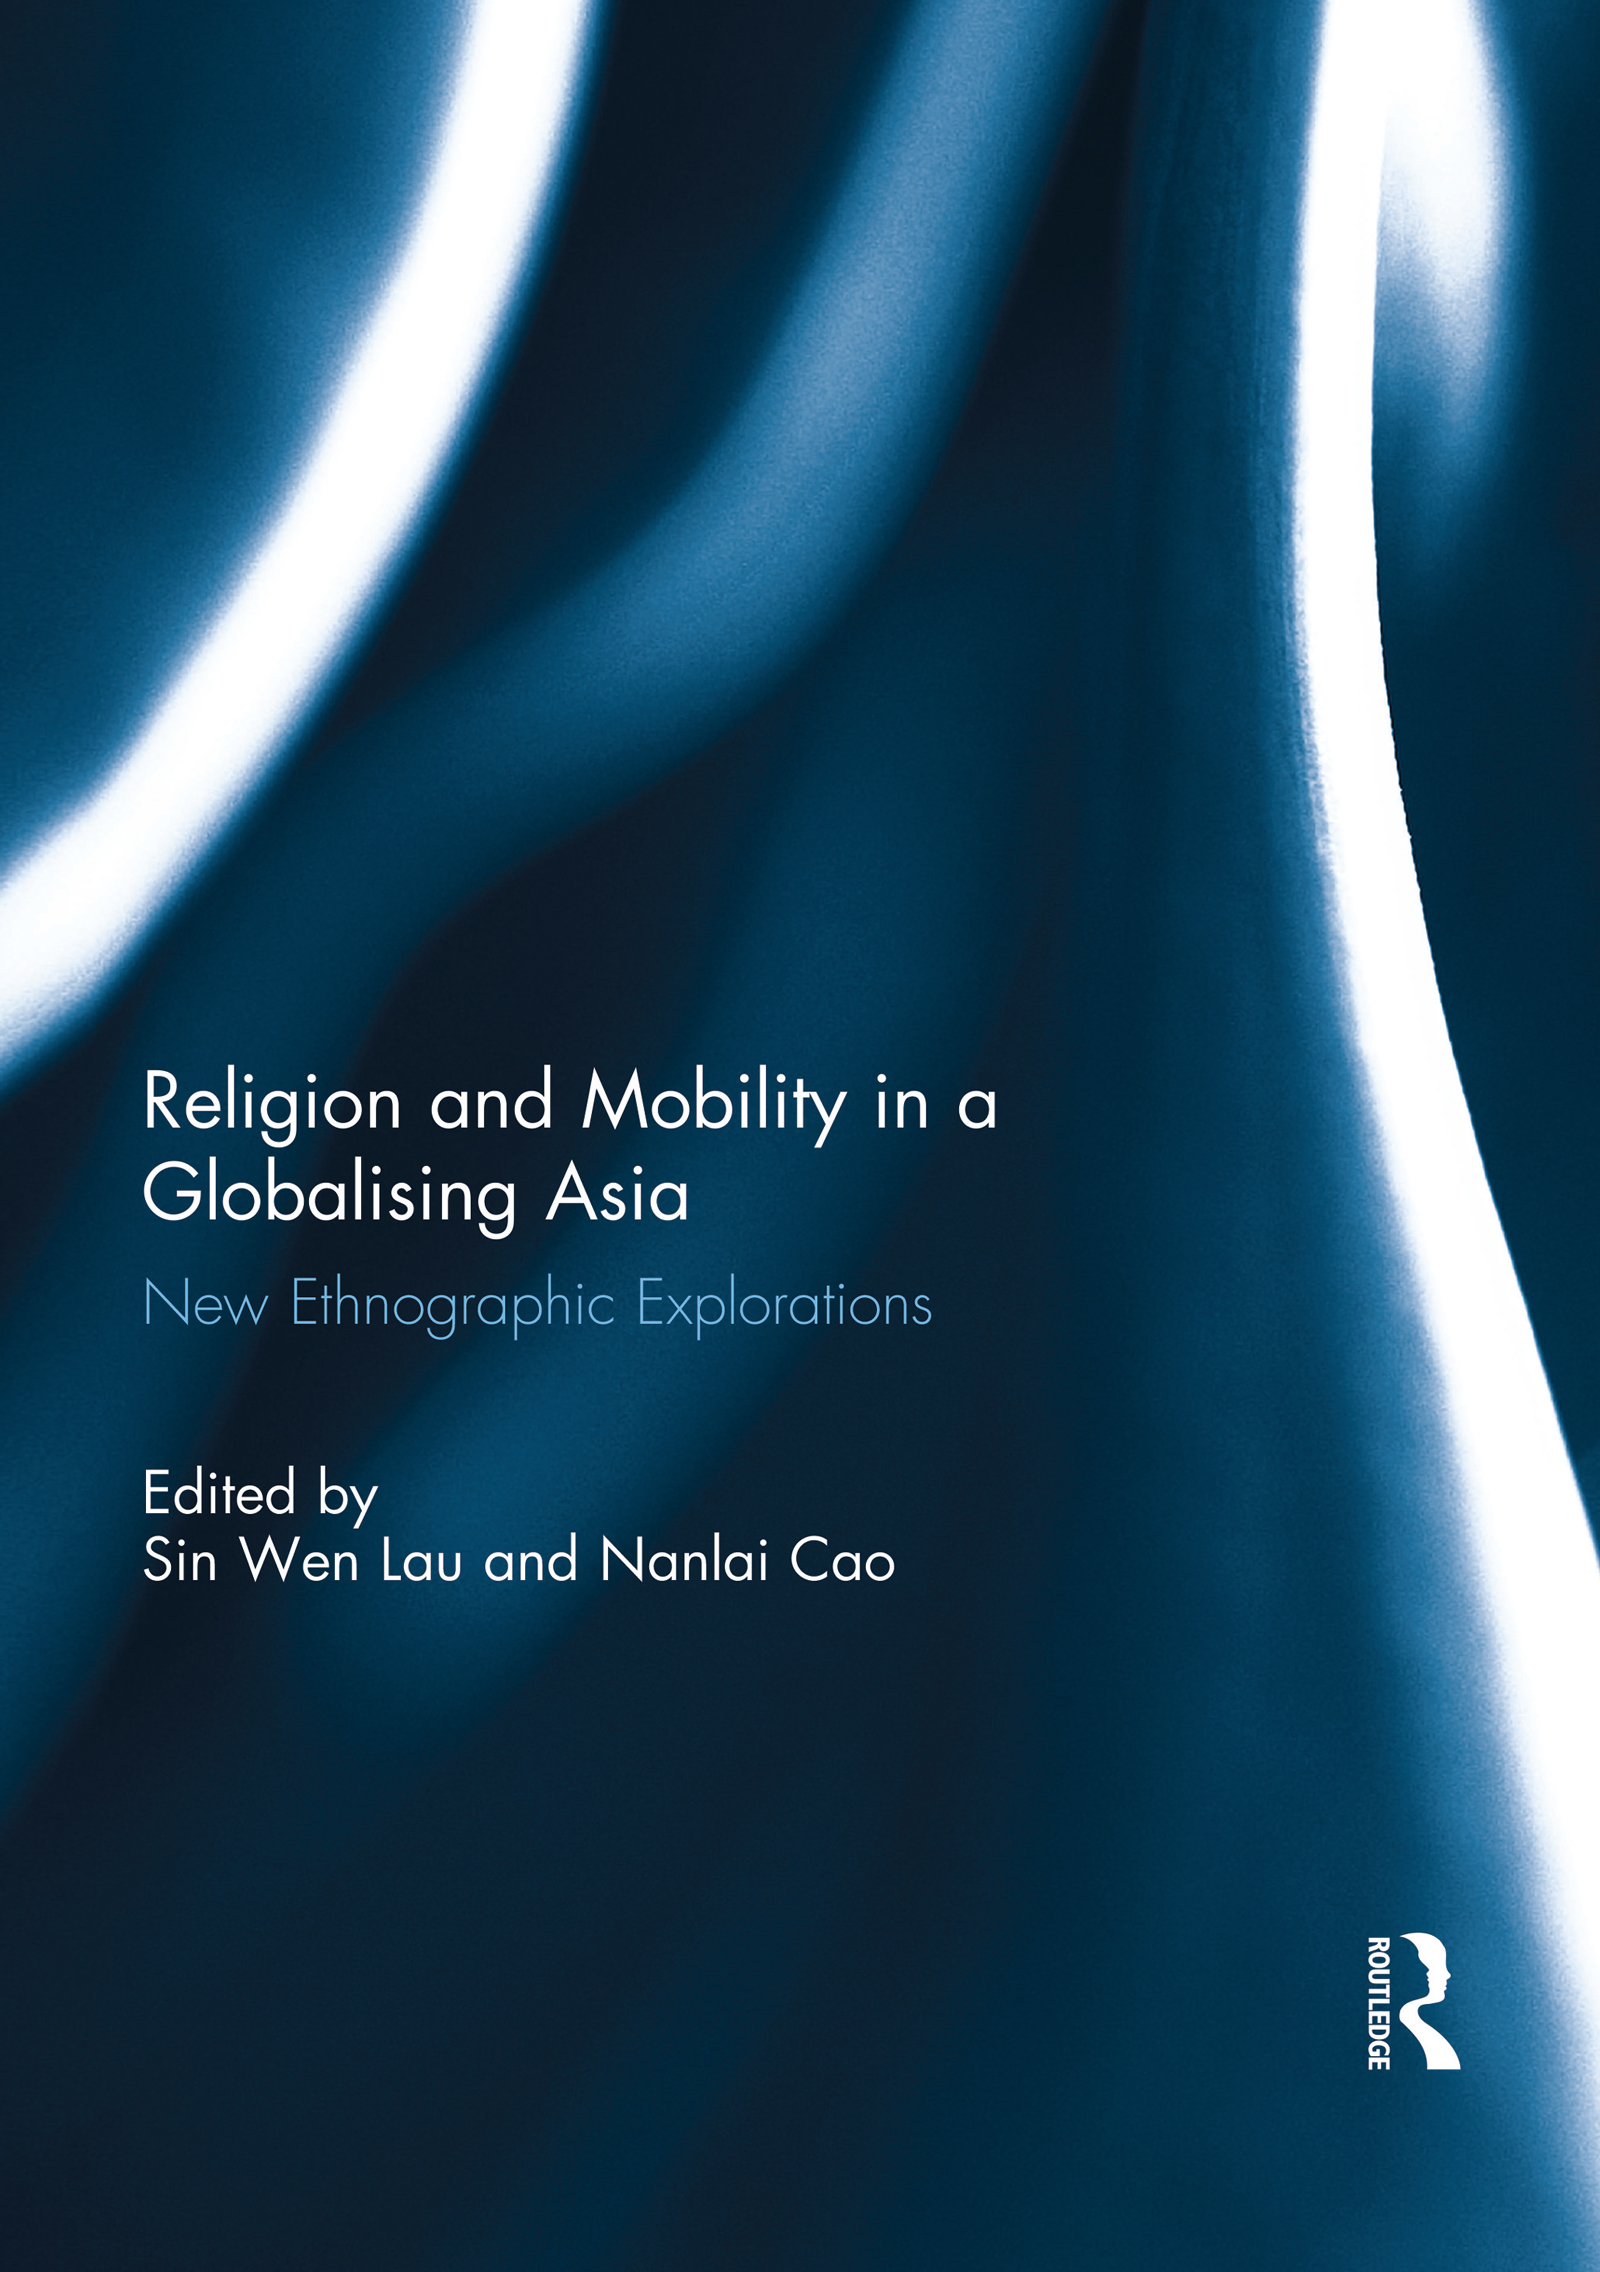 Religion and Mobility in a Globalising Asia: New Ethnographic Explorations book cover